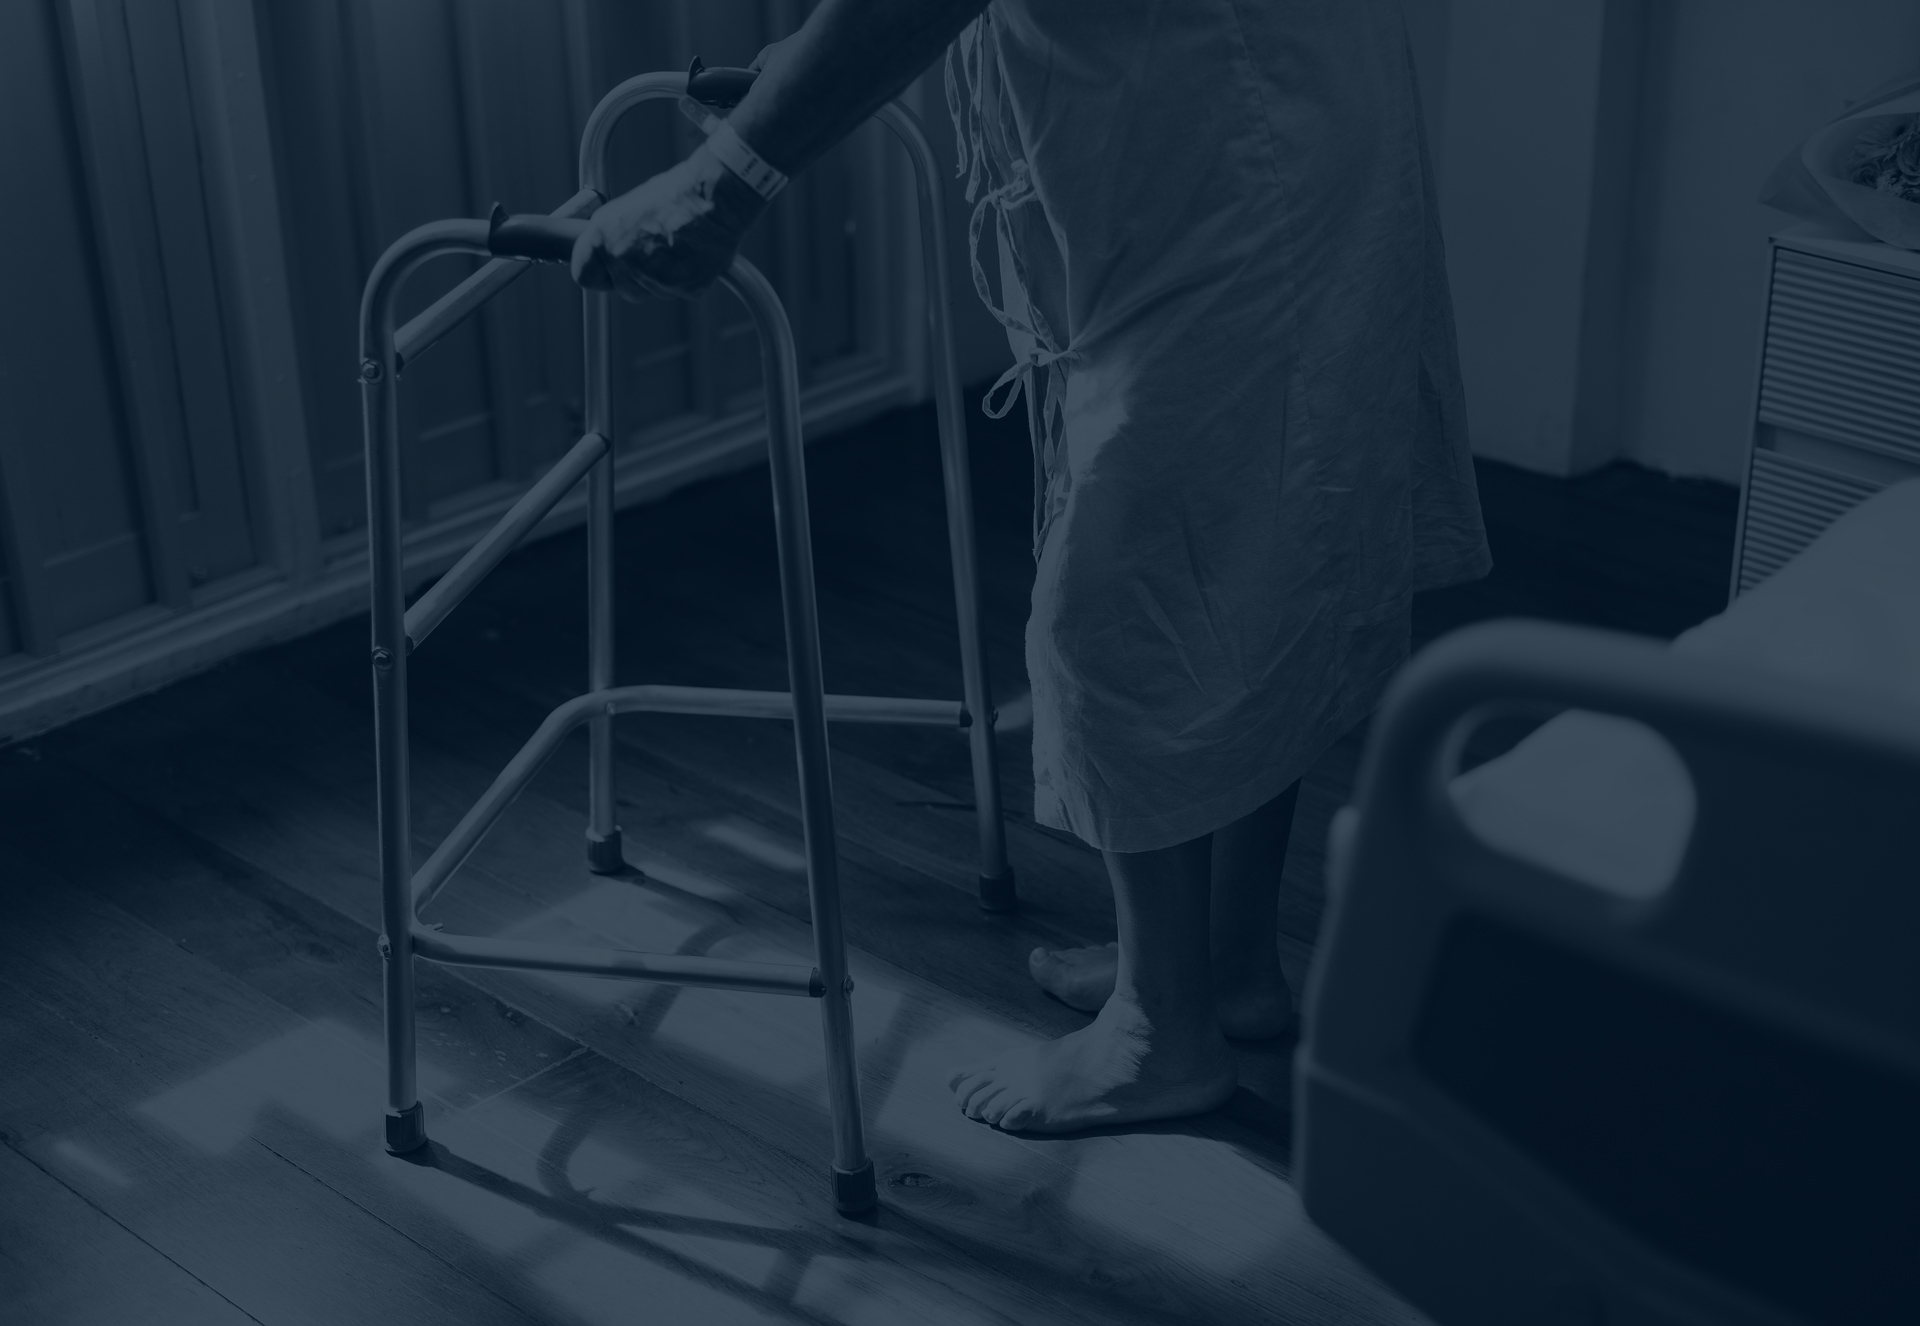 FAQs about Nursing Homes - With more than 20 years of experience working in nursing homes, I have compiled answers to the questions I get asked most frequently. If you do not see an answer to your question here, please feel free to contact me.